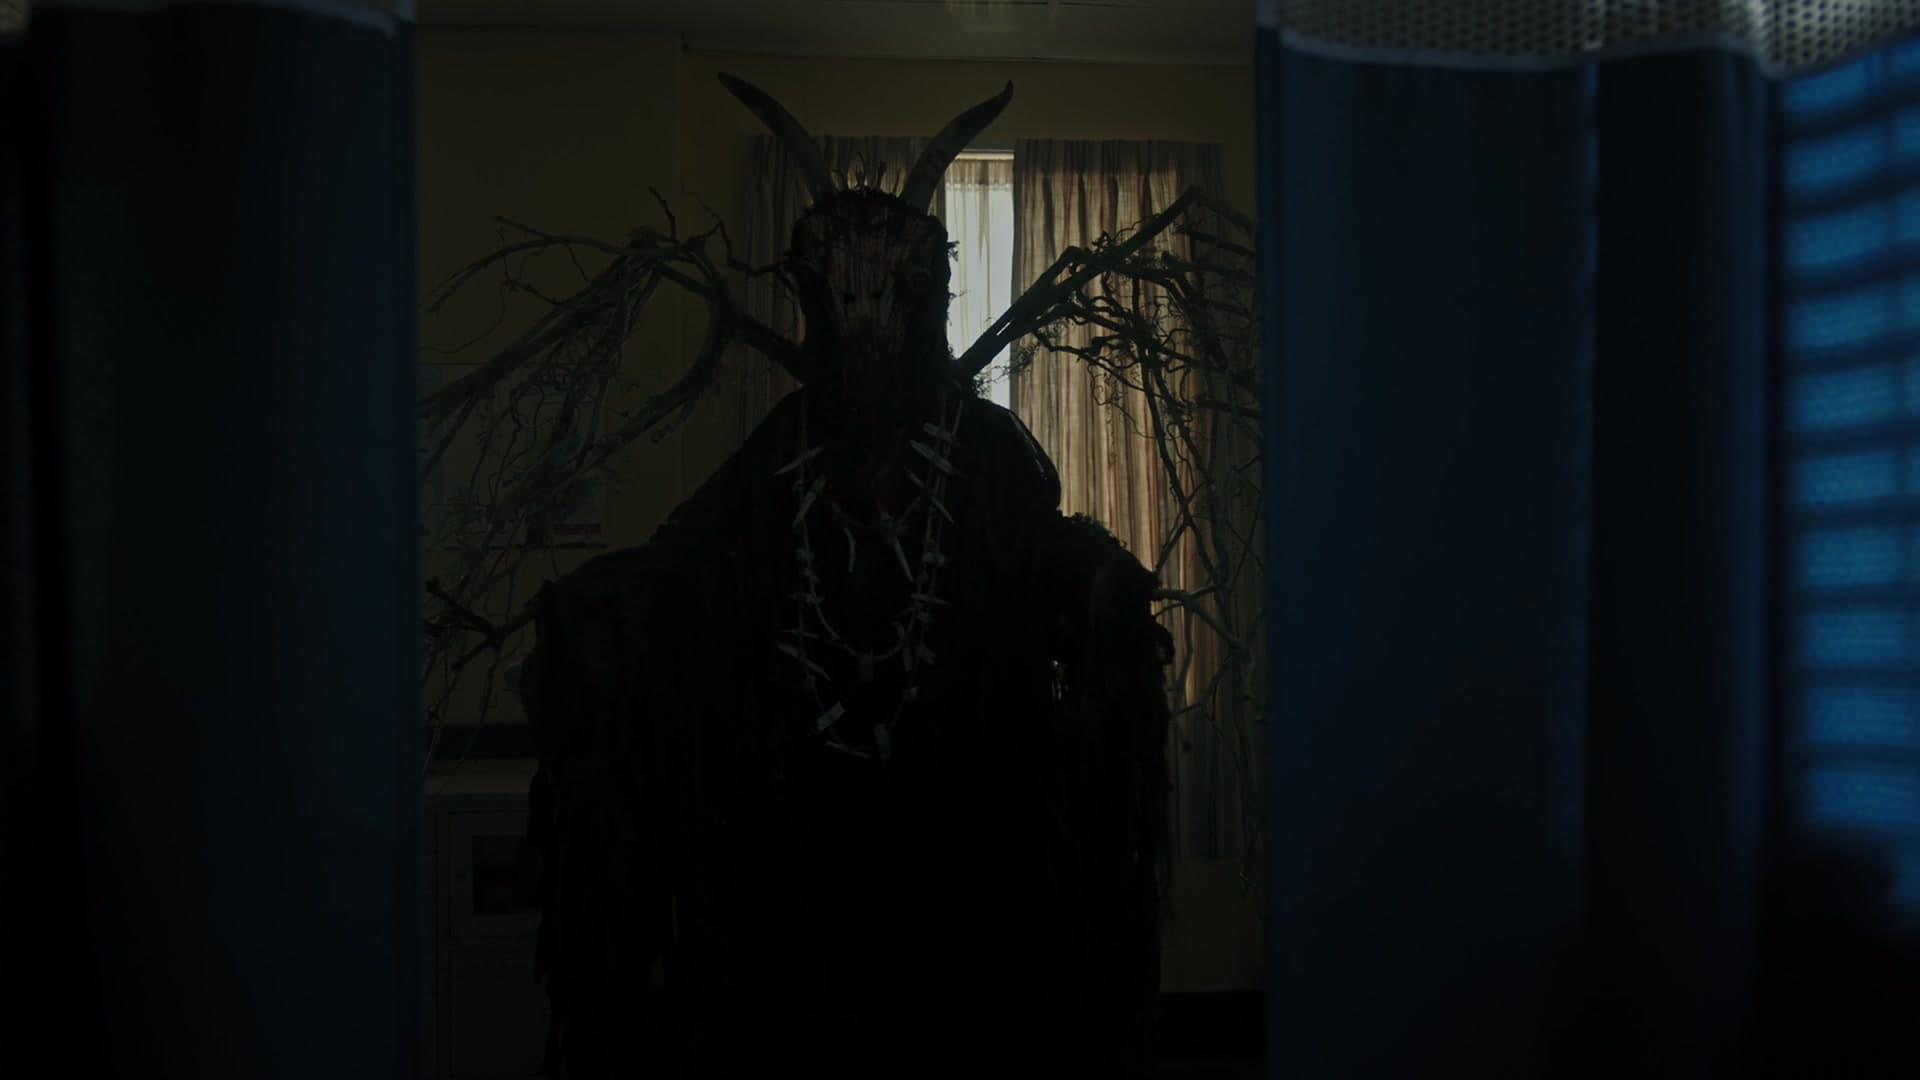 Visually, the Gargoyle King looks nothing human (Source: Riverdale fan wiki)